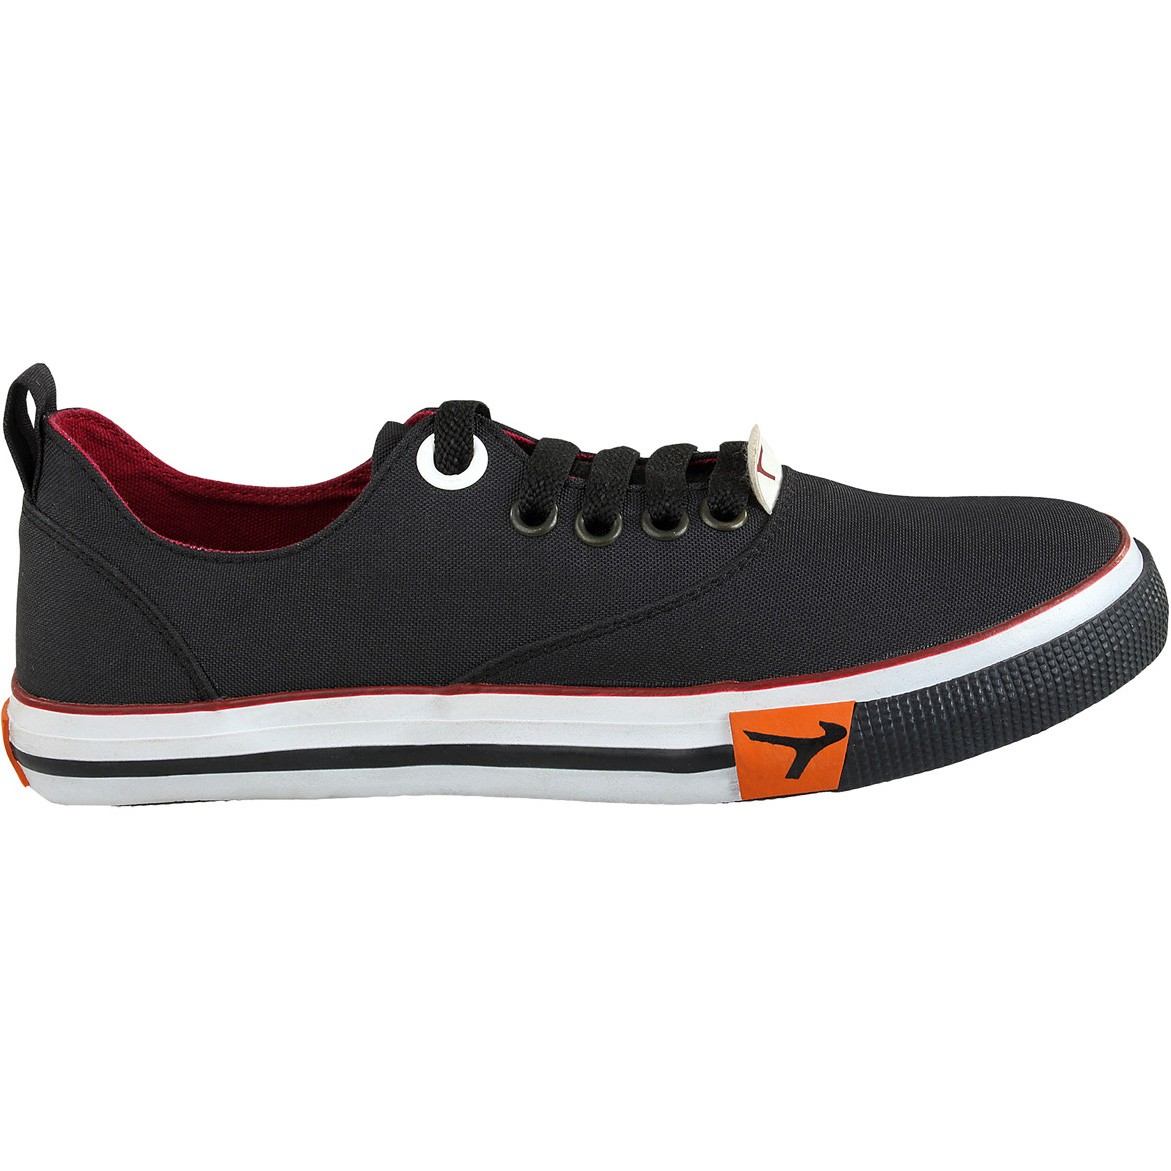 Buy Boys Canvas Shoes, Sneakers for Men